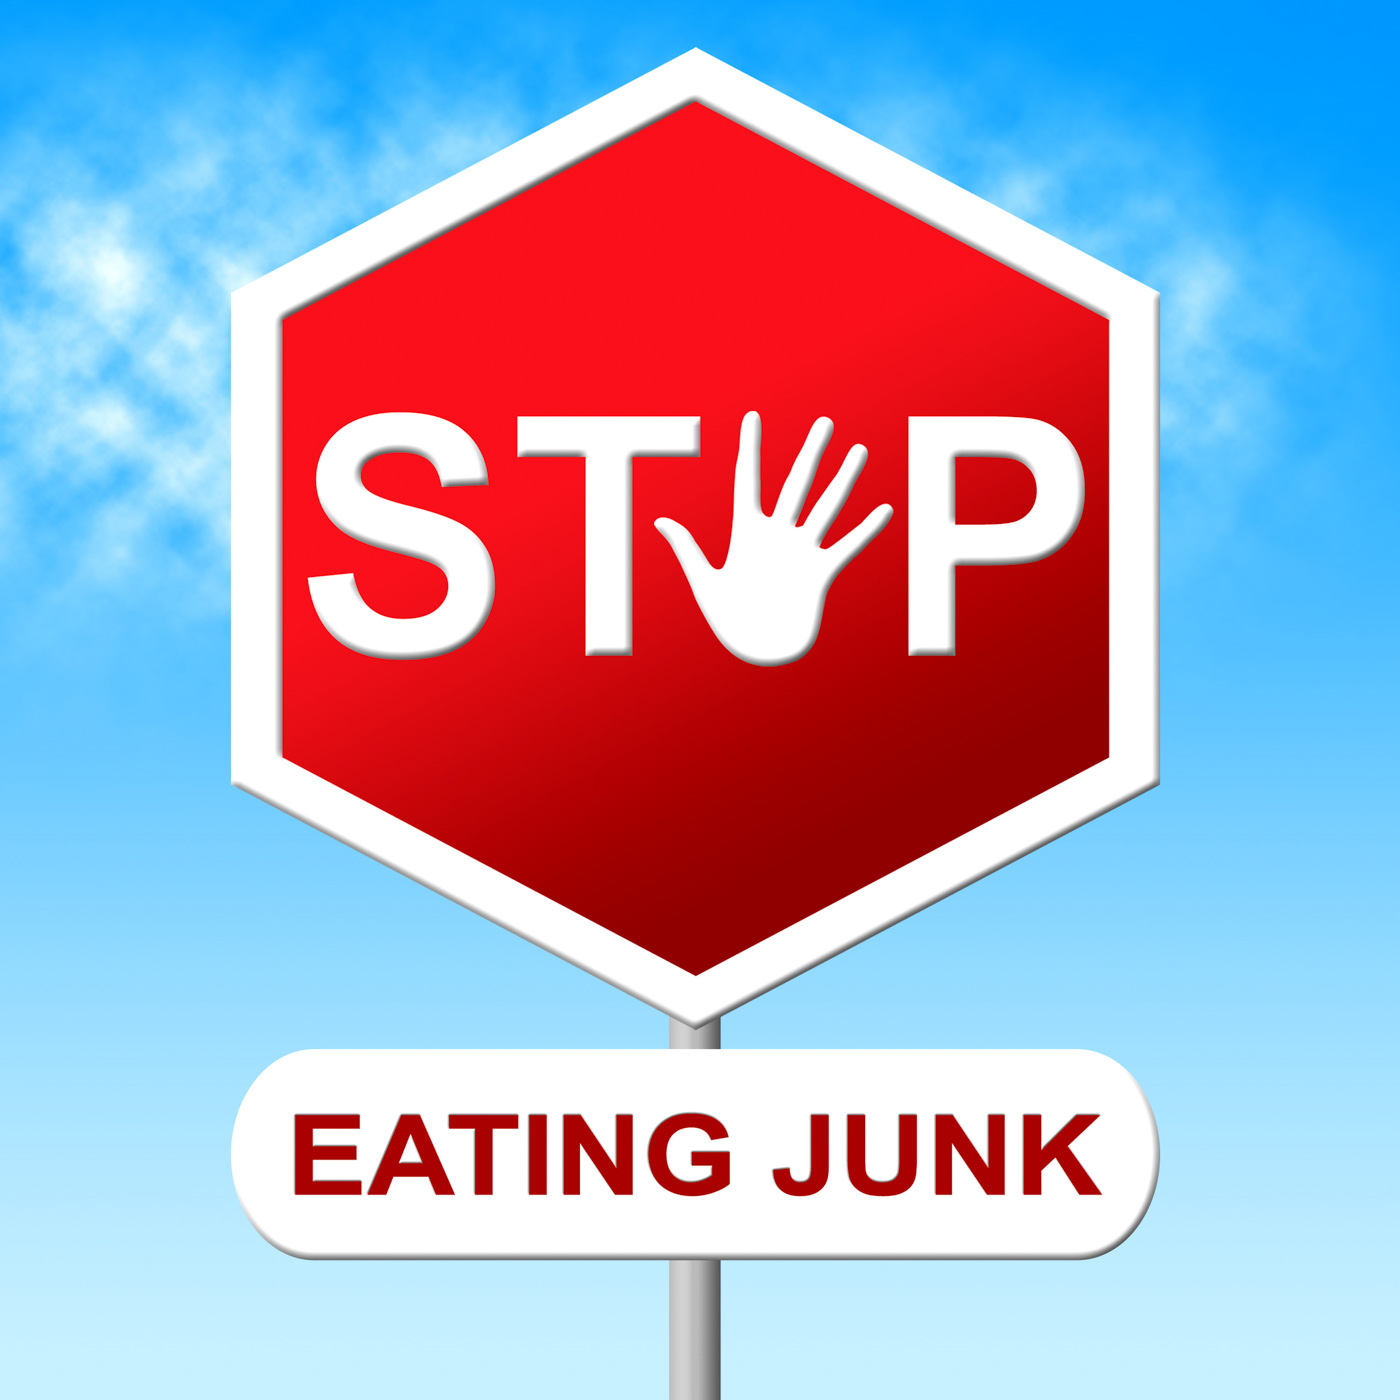 Stop eating junk means unhealthy food and danger photo